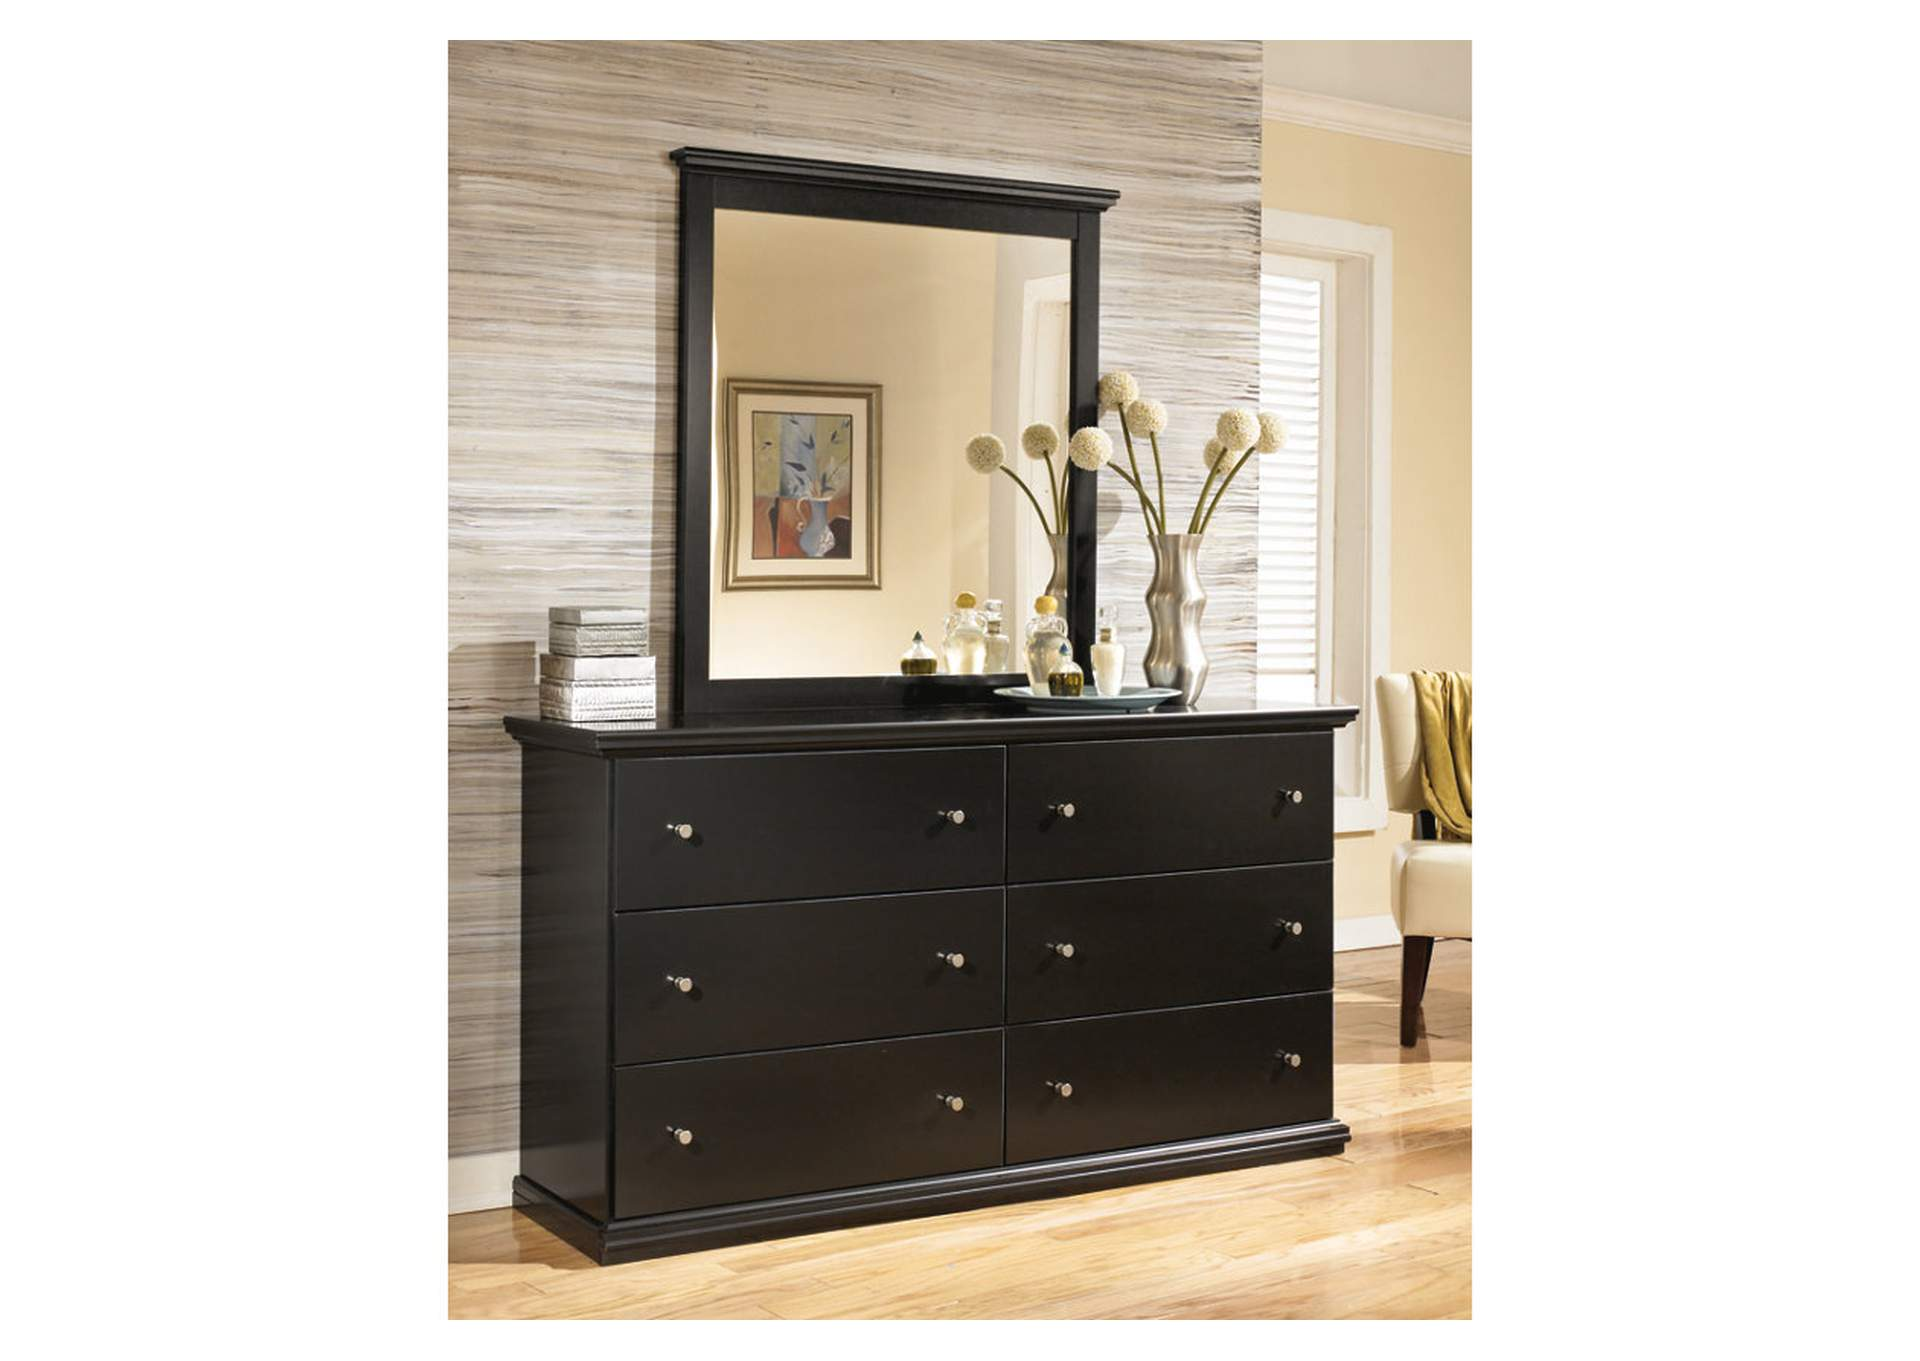 Maribel Bedroom Mirror,ABF Signature Design by Ashley